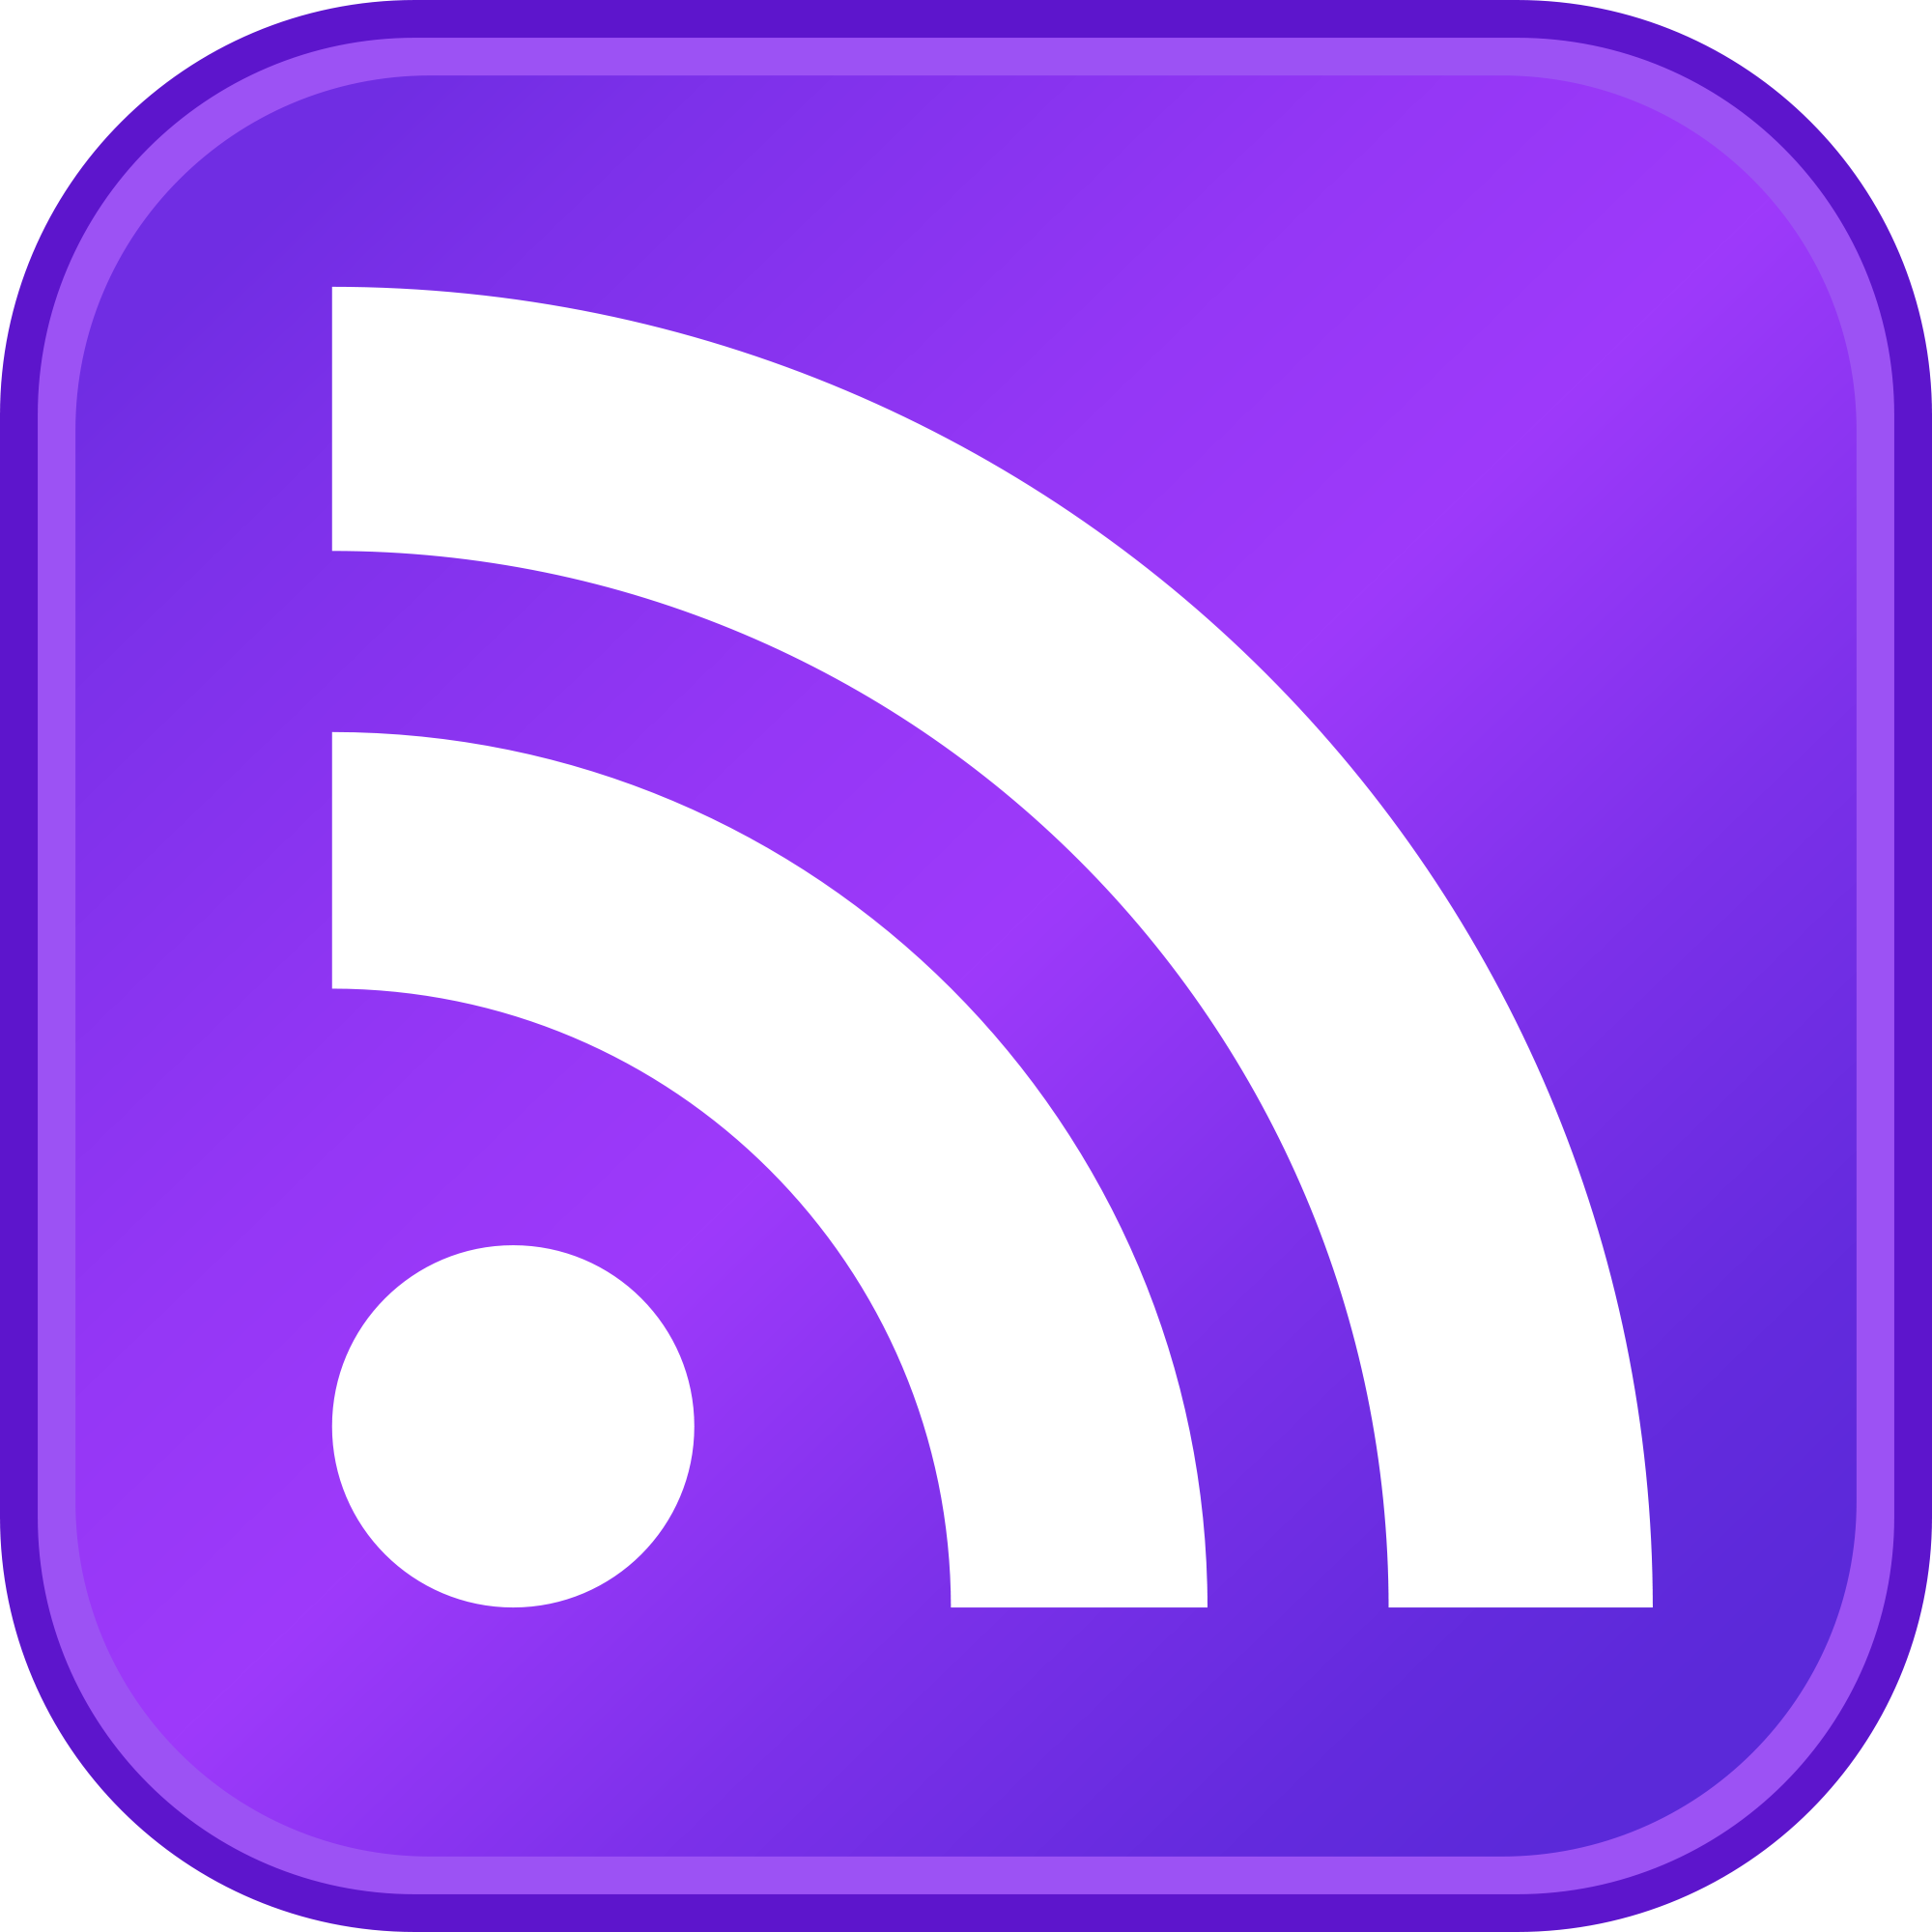 Rss feed software by. Buttons clipart purple button